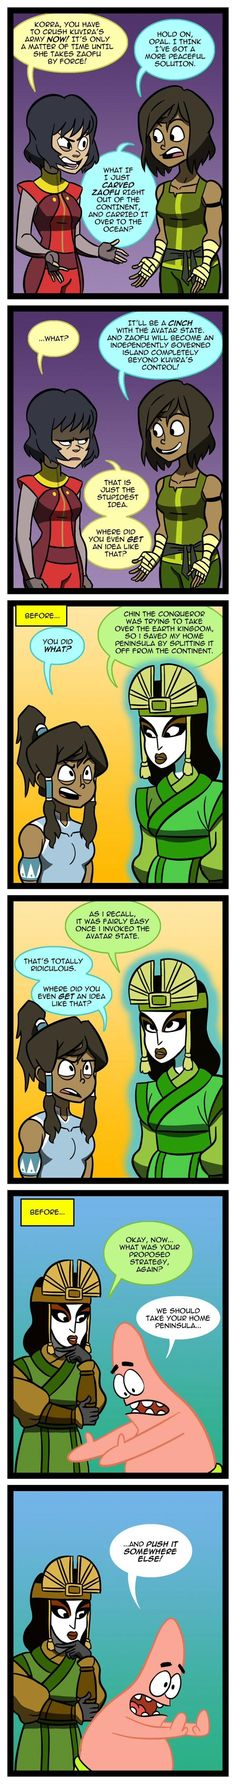 Now Why Didn't I Think Of That? | Avatar: The Last Airbender / The Legend of Korra | Know Your Meme